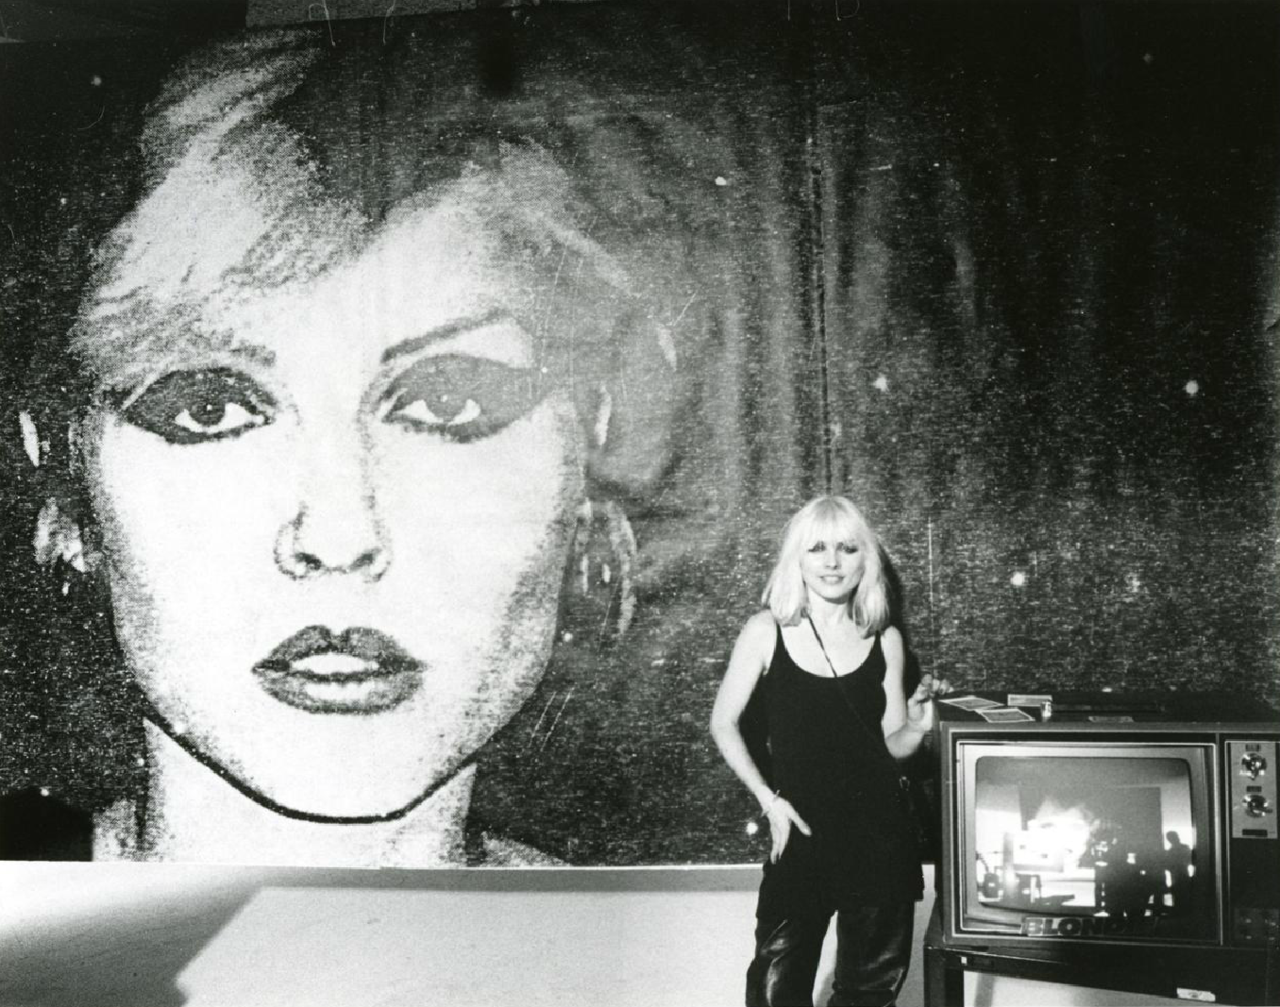 Debbie Harry NYC 1977 photographed by Bob Gruen